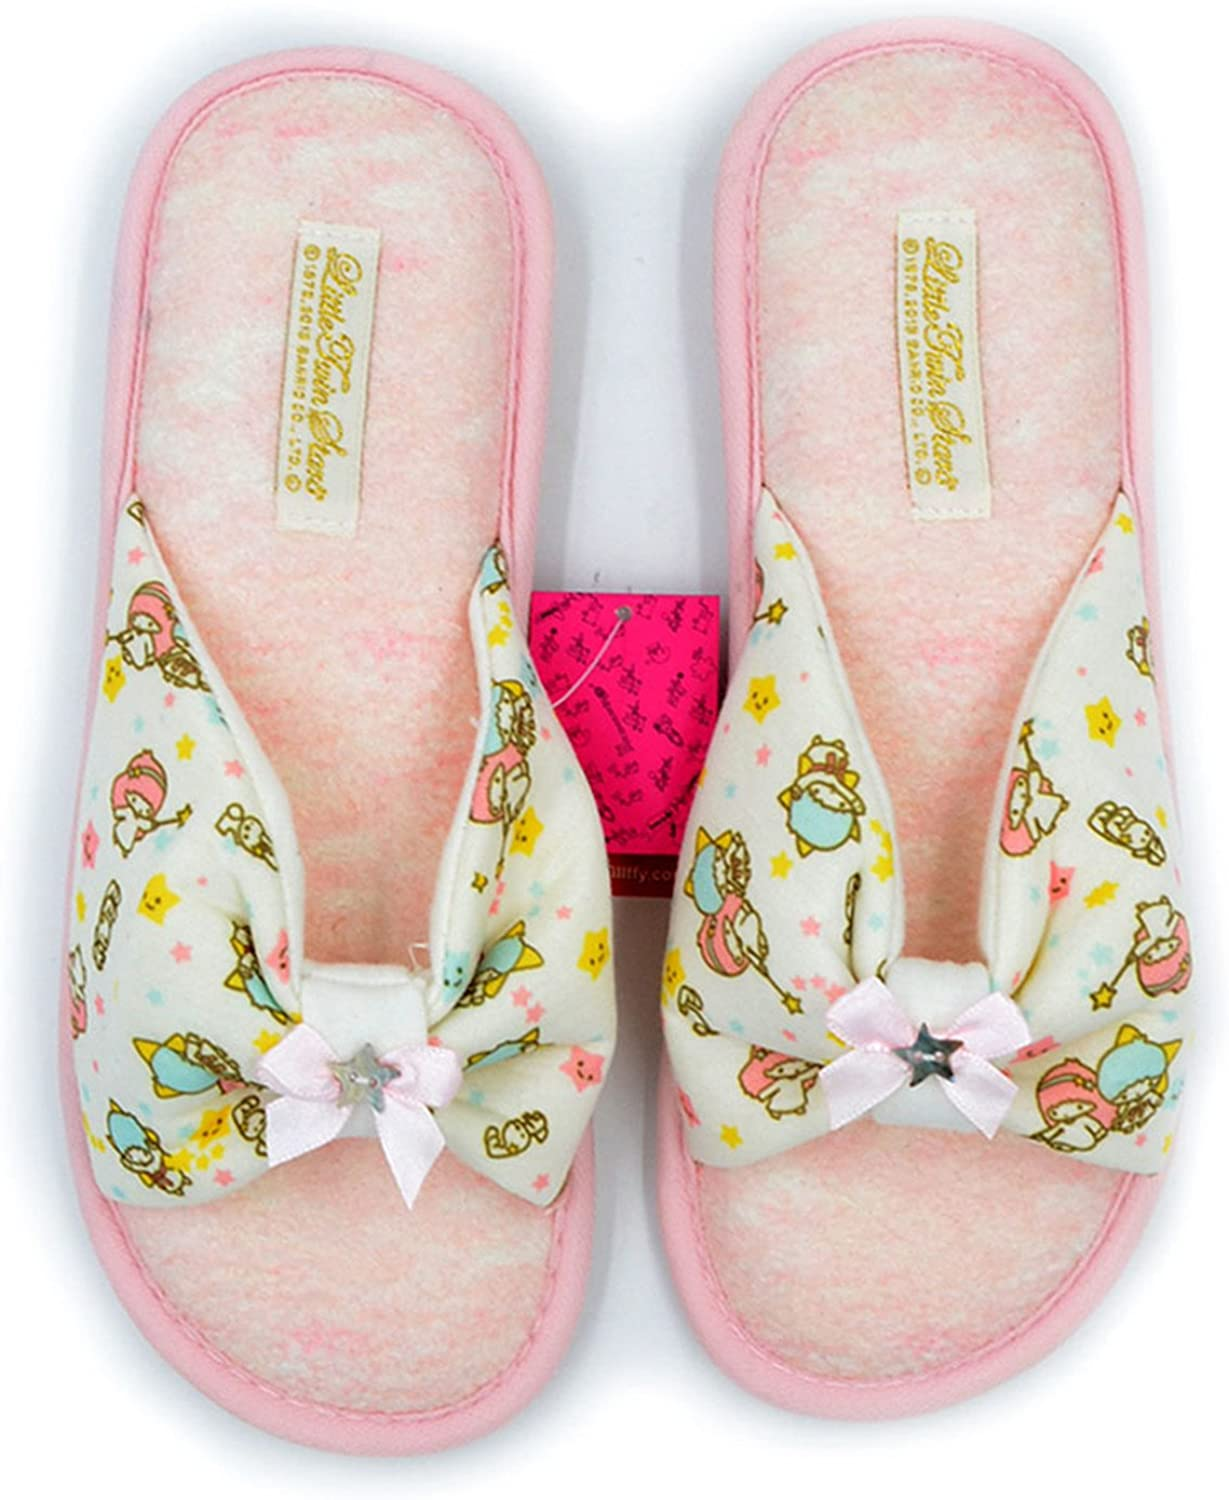 Joddie Haha Sandals Spring Summer Japanese Household Slippers Female Bowknot Breathable Cotton Antiskid Lady Indoor Slippers